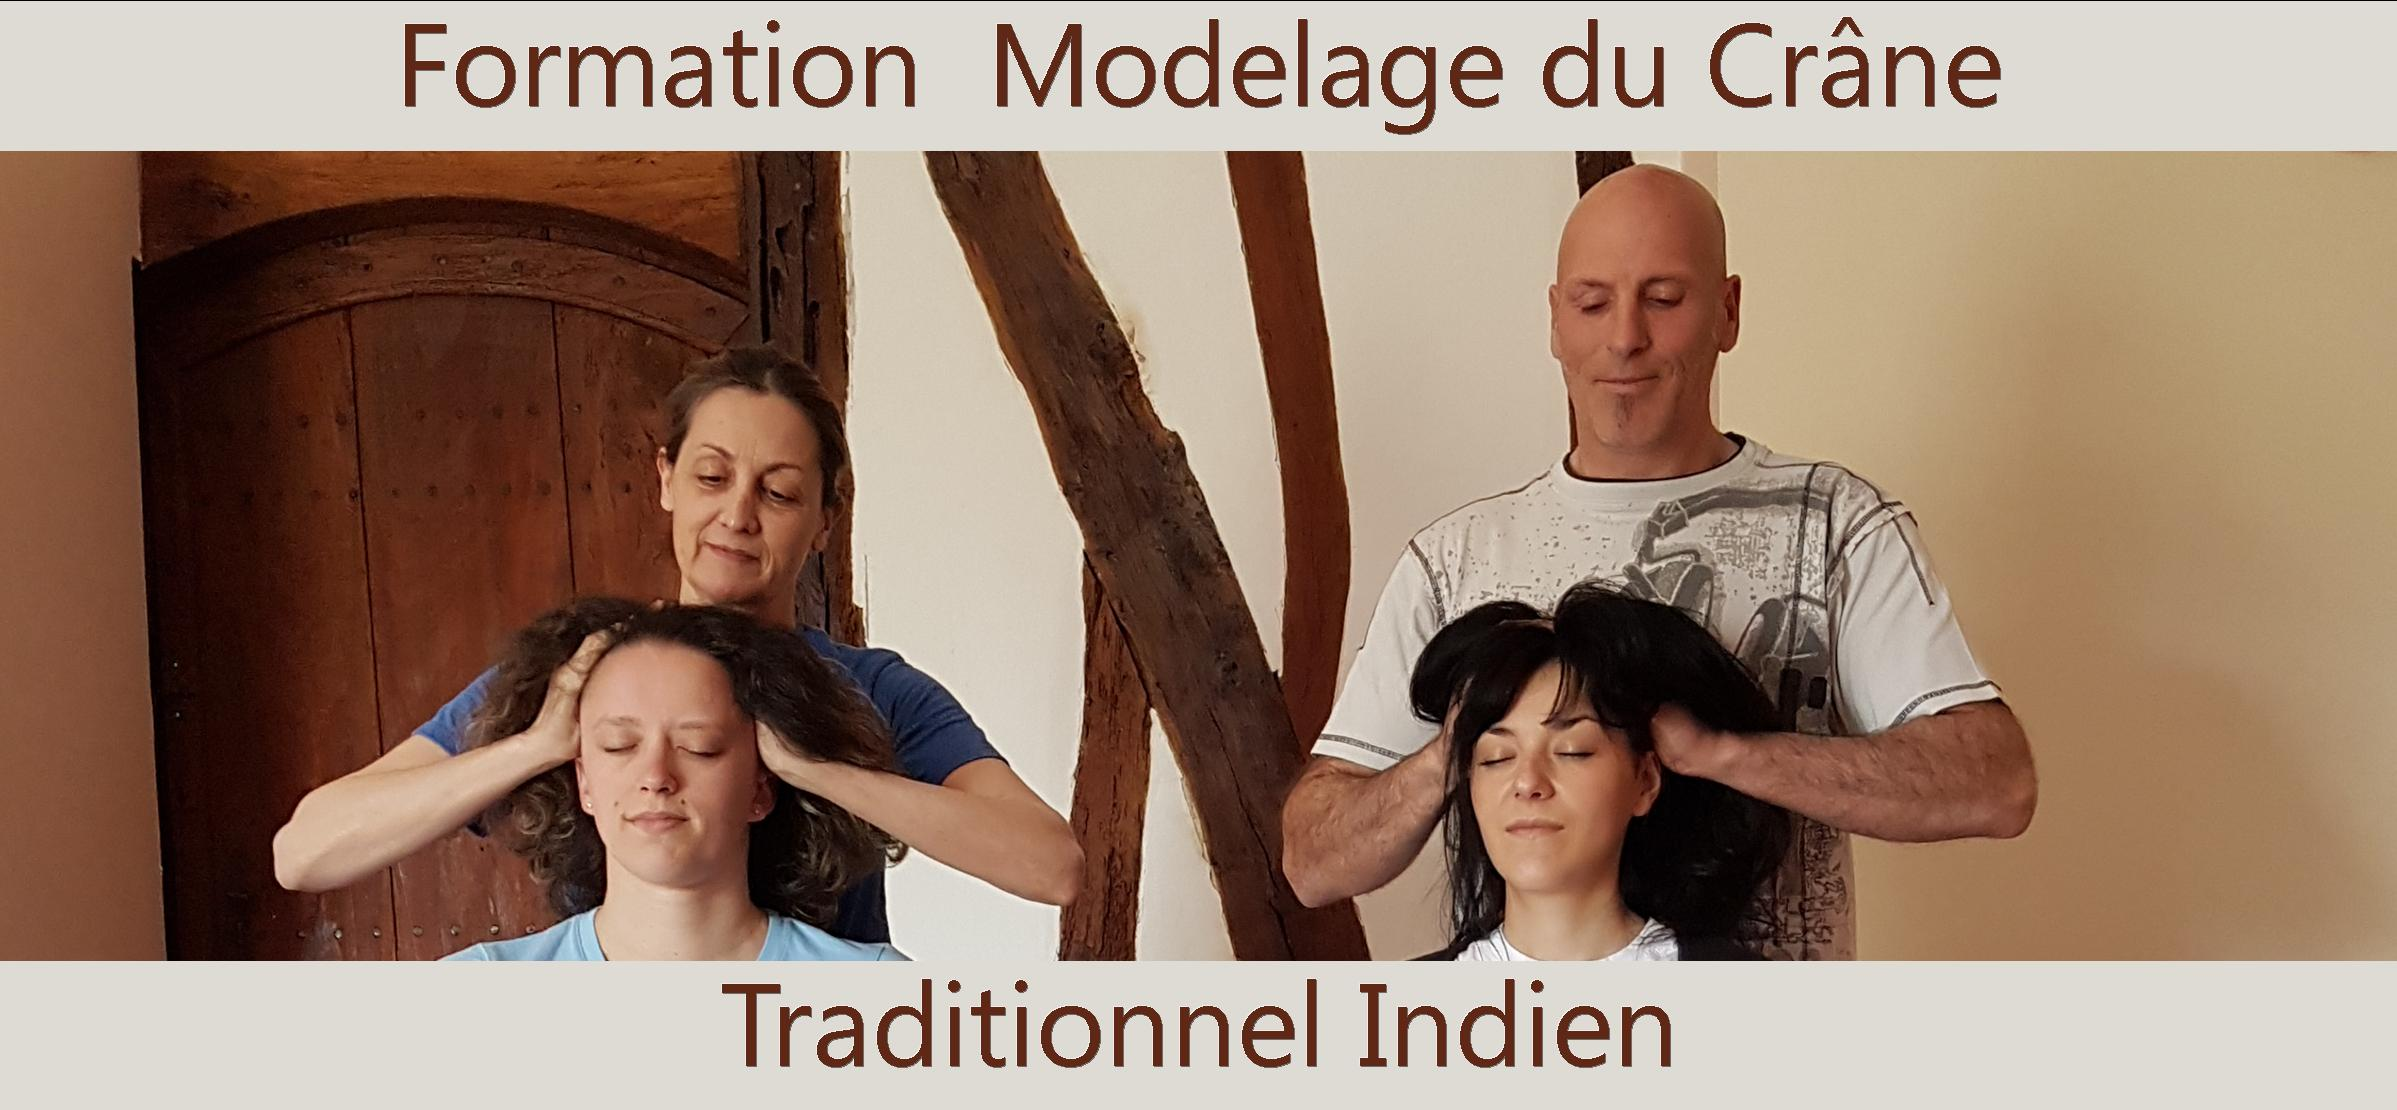 Modelage Traditionnel Indien du Crâne - Champissage